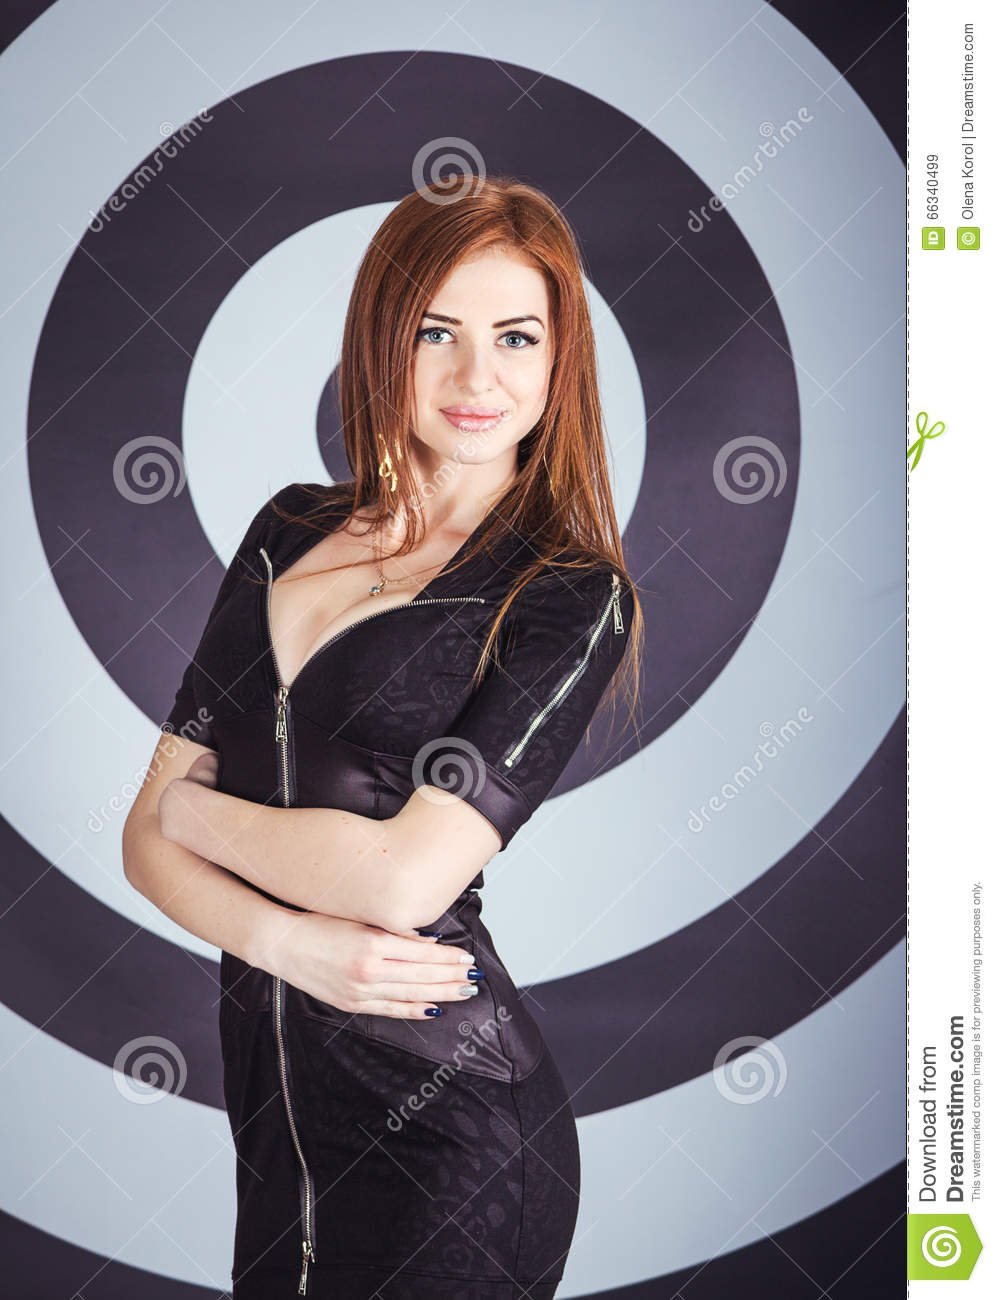 Girl In Front Of Target Background Stock Image - Image of